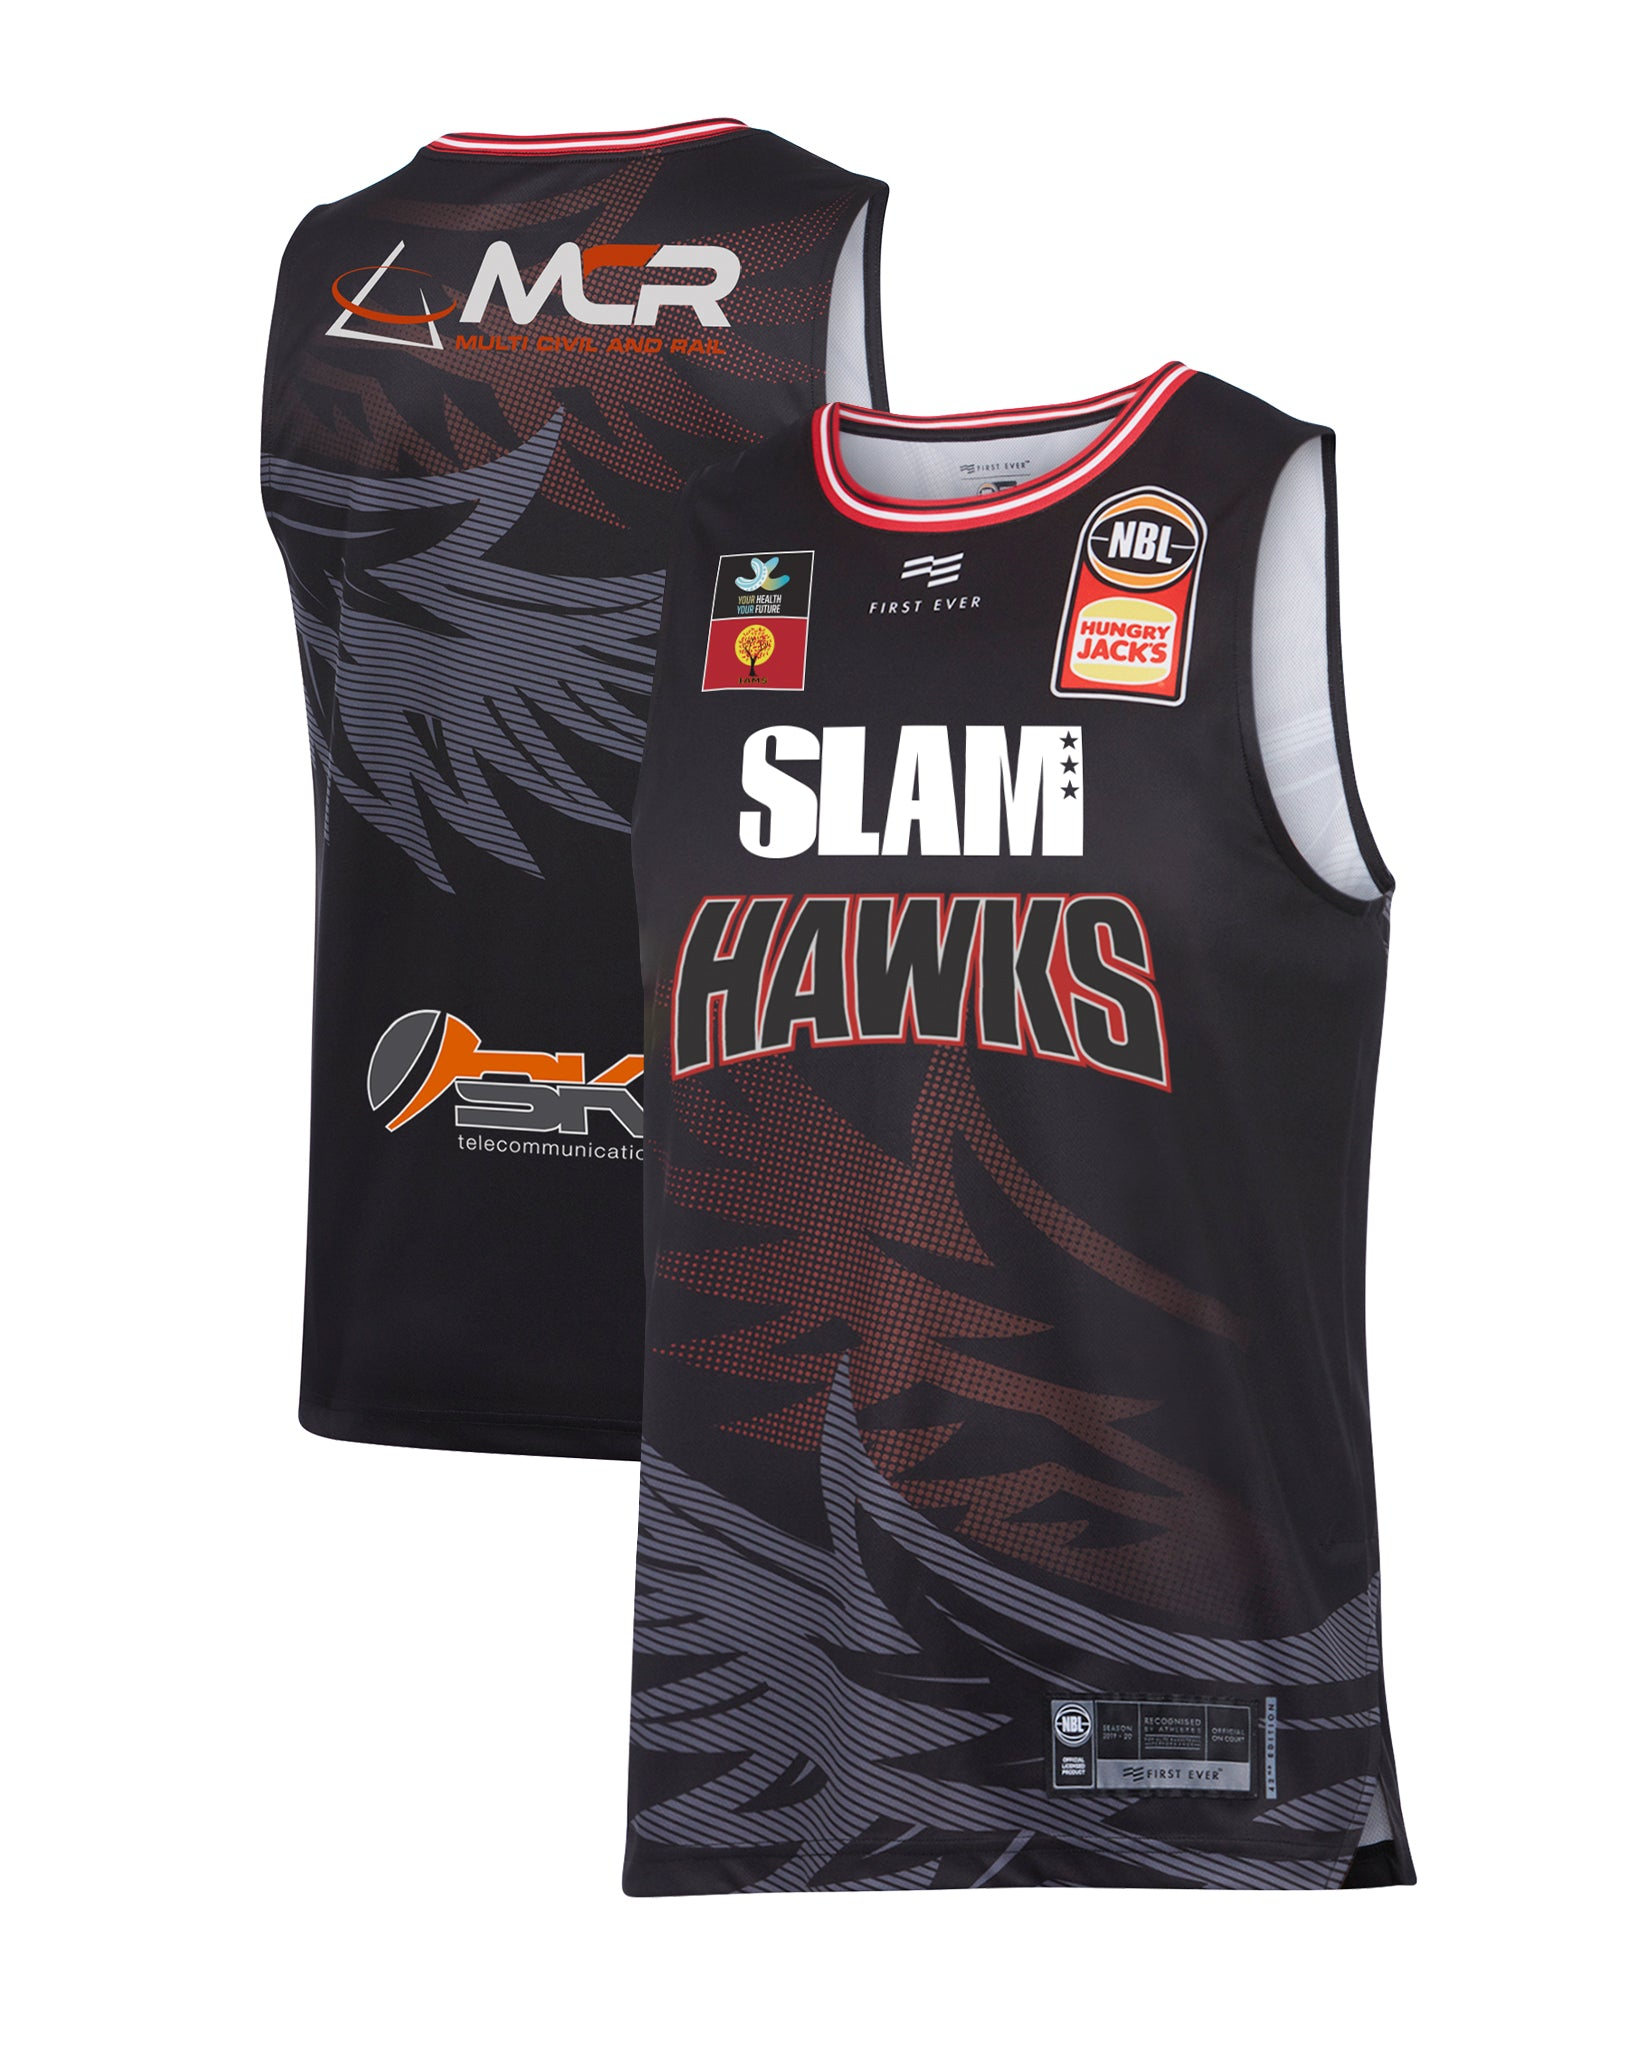 Illawarra Hawks 19/20 Authentic Home Jersey (with SLAM)